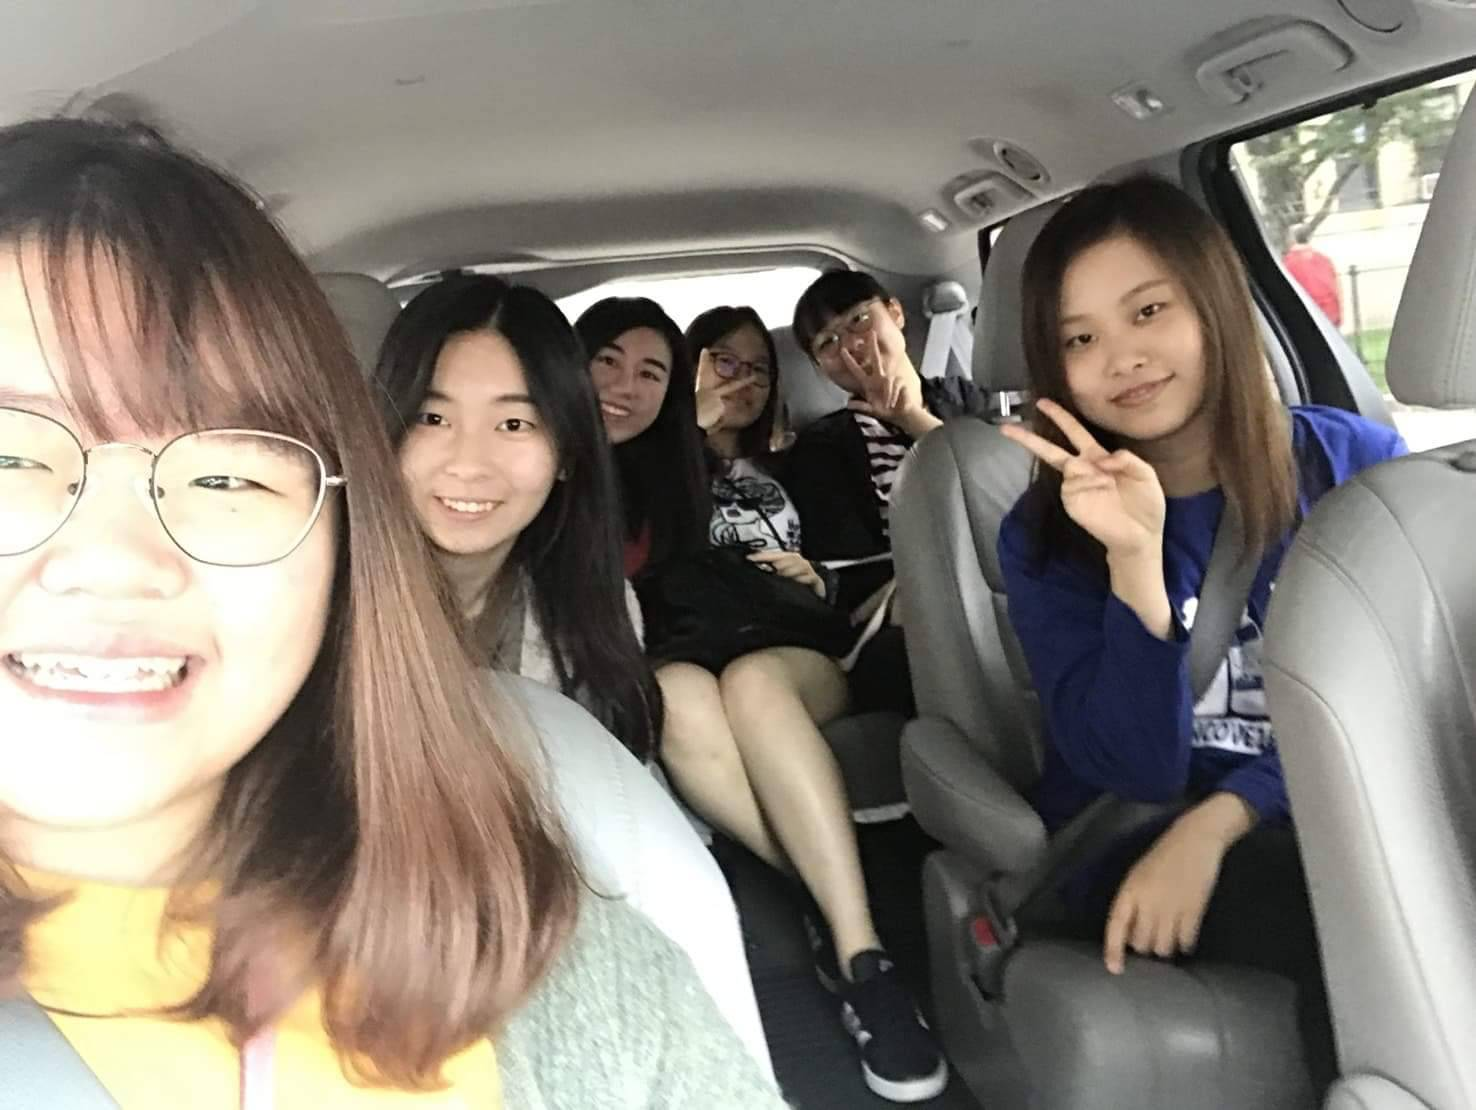 TSA in car